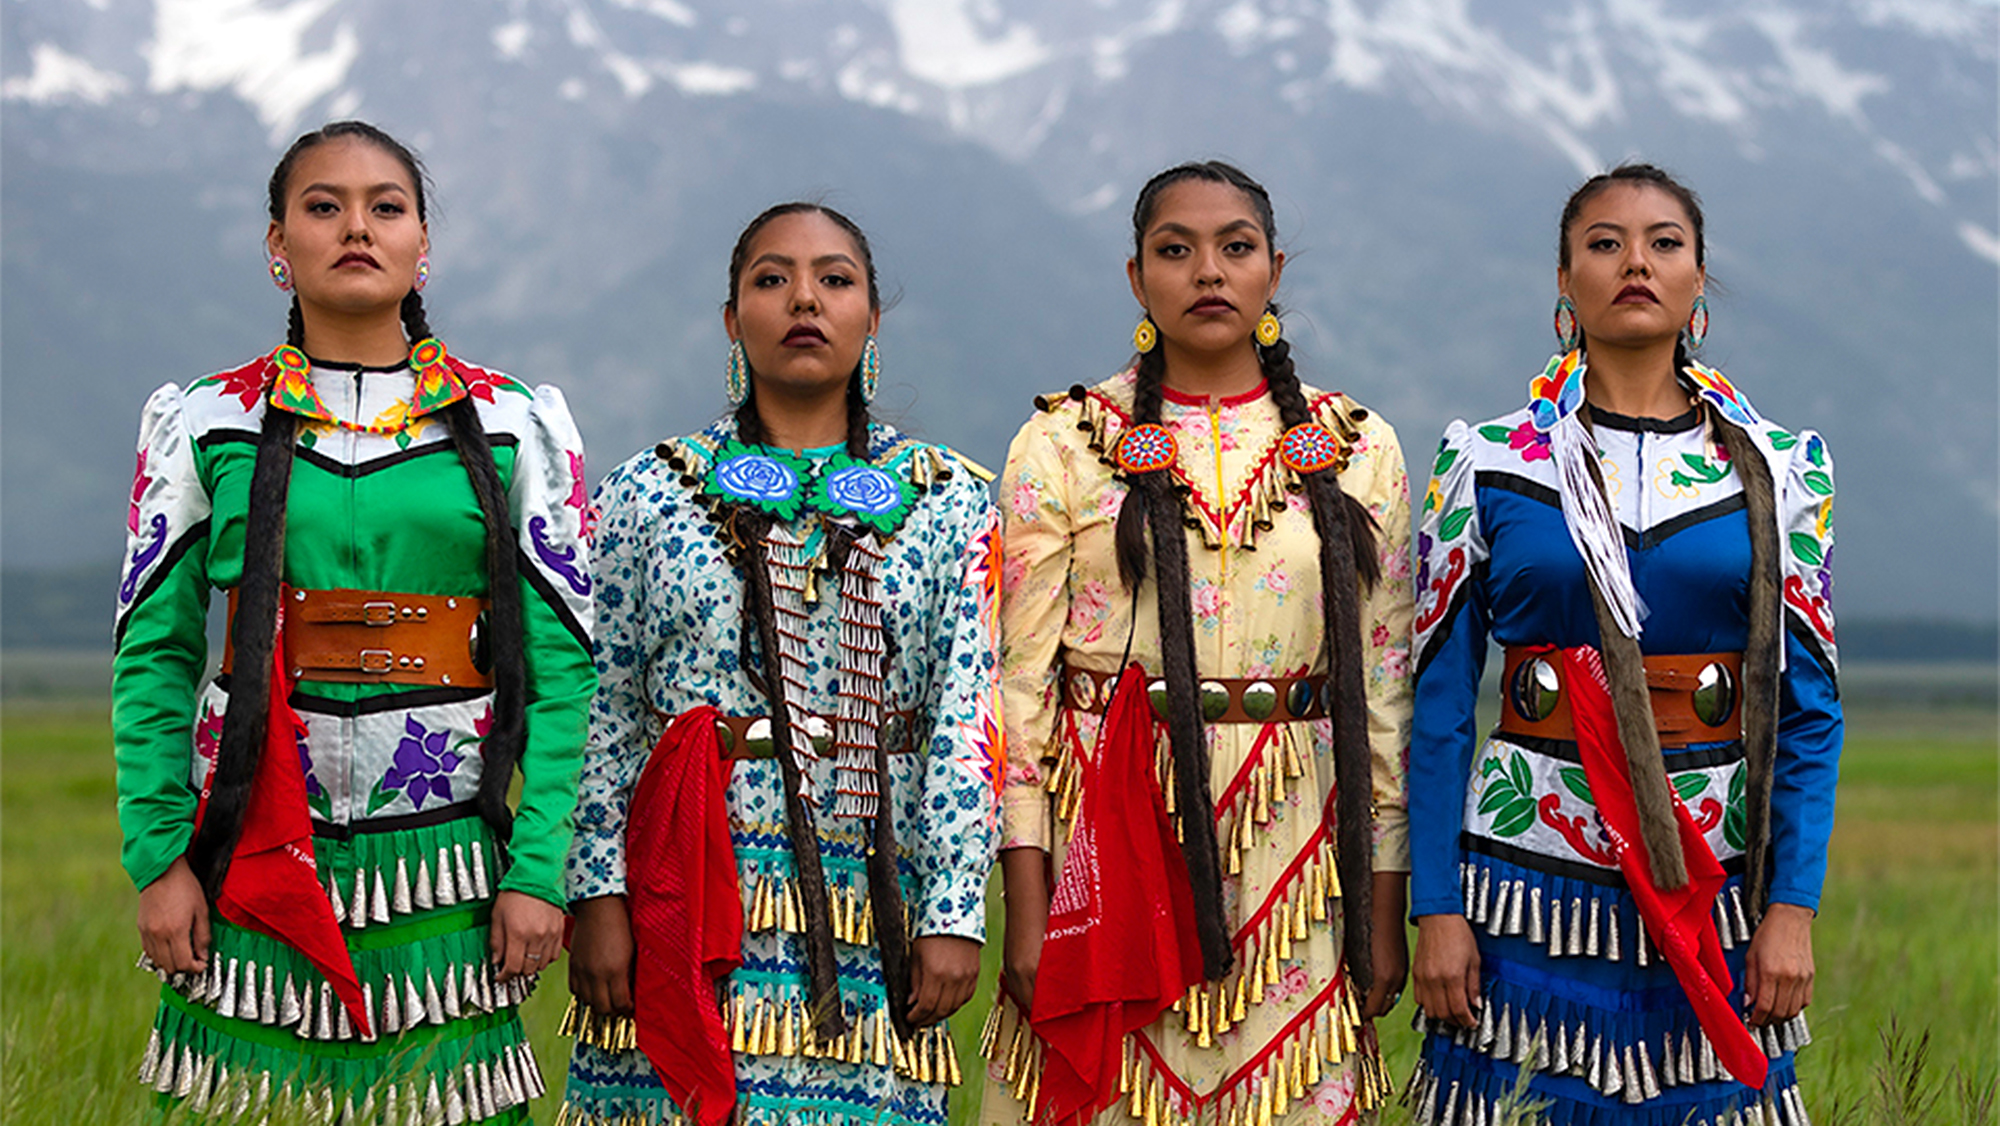 four native women stand shoulder to shoulder in a field with mountains in the background, wearing multi-colored jingle dresses.